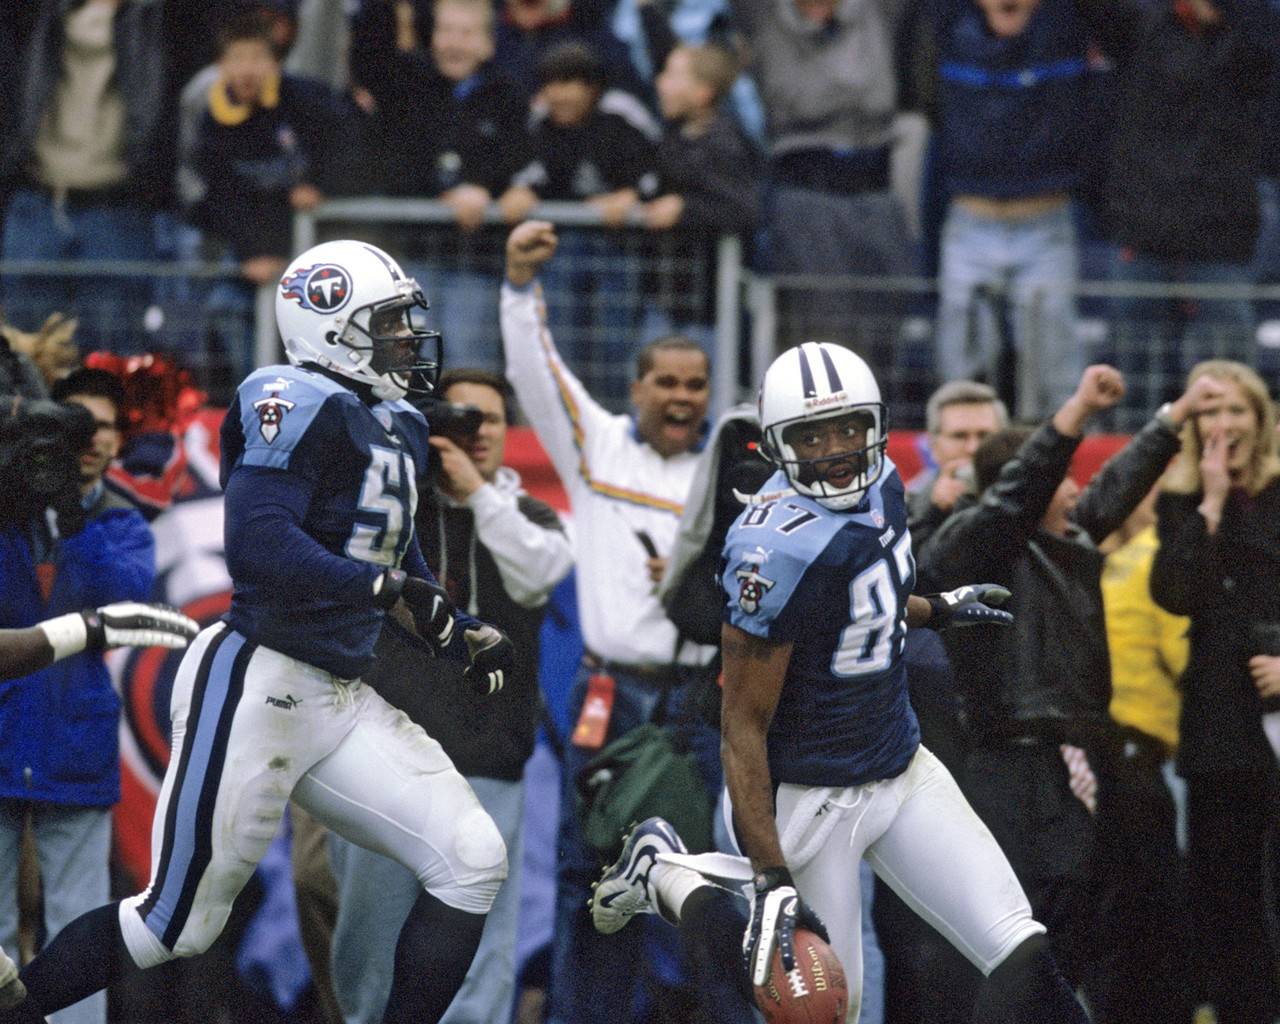 Tennessee Titans wide receiver Kevin Dyson (87) takes a kickoff return 75 yards for a touchdown during the AFC Wildcard Playoff, a 22-16 victory over the Buffalo Bills on January 8, 2000, at Adelphia Coliseum in Nashville, Tennessee.  The Bills scored a field goal with 16 seconds left in the game, seemingly putting the game out of reach.  On the ensuing kickoff, Titans fullback Lorenzo Neal fielded the ball and handed off to tight end Frank Wycheck, who then passed the ball to Dyson.  After a  review to verify that it was indeed a lateral and not a forward pass (which would have nullified the touchdown), the ruling on the field stood, and the so-called 'Music City Miracle' was born.